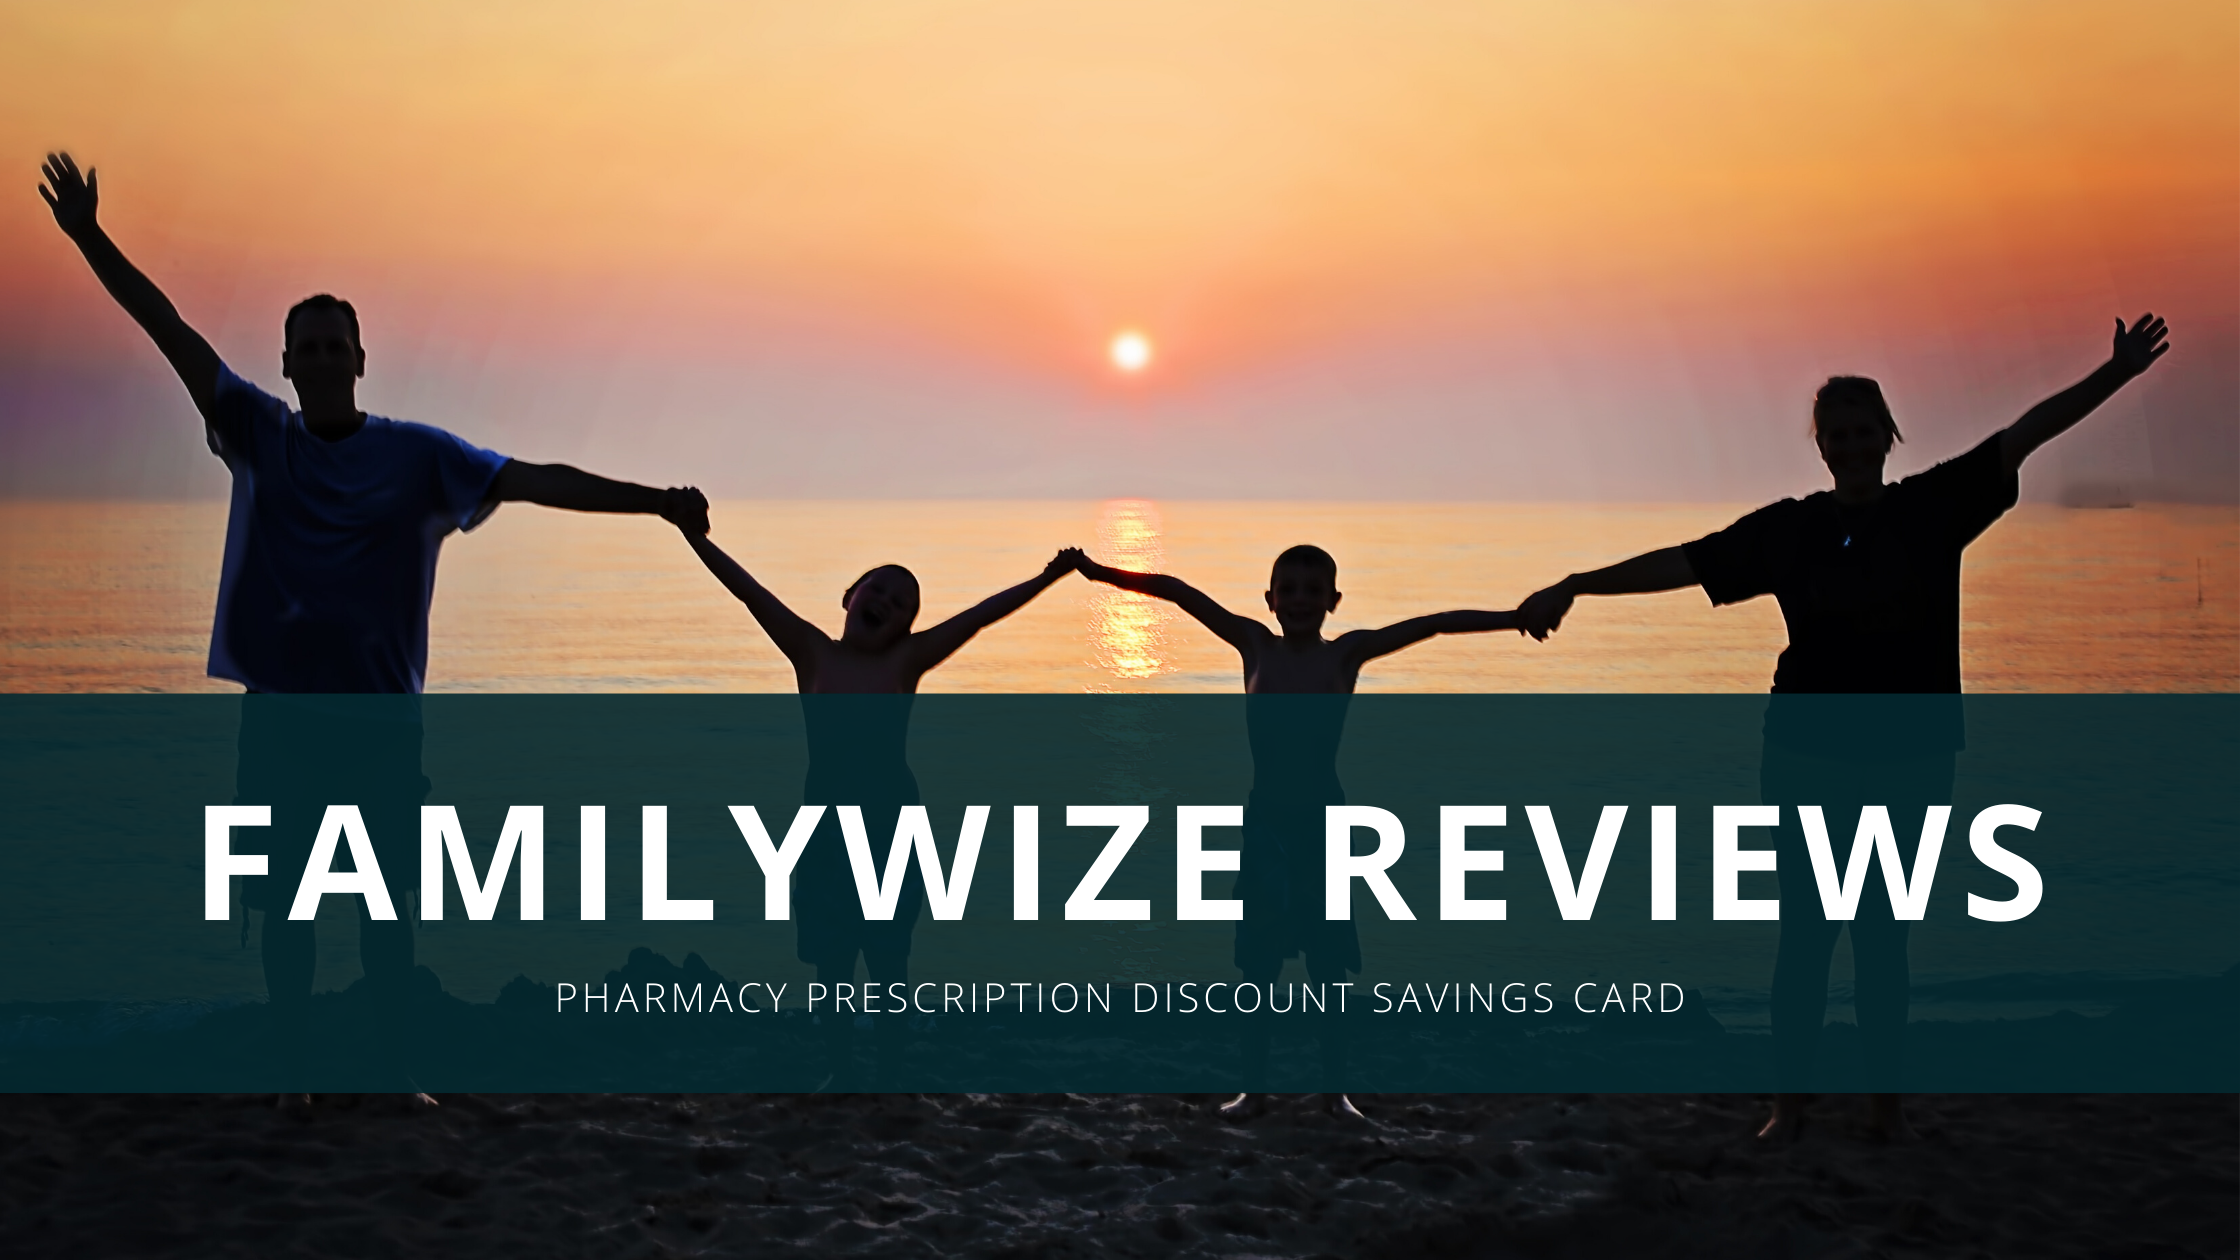 FamilyWize reviews